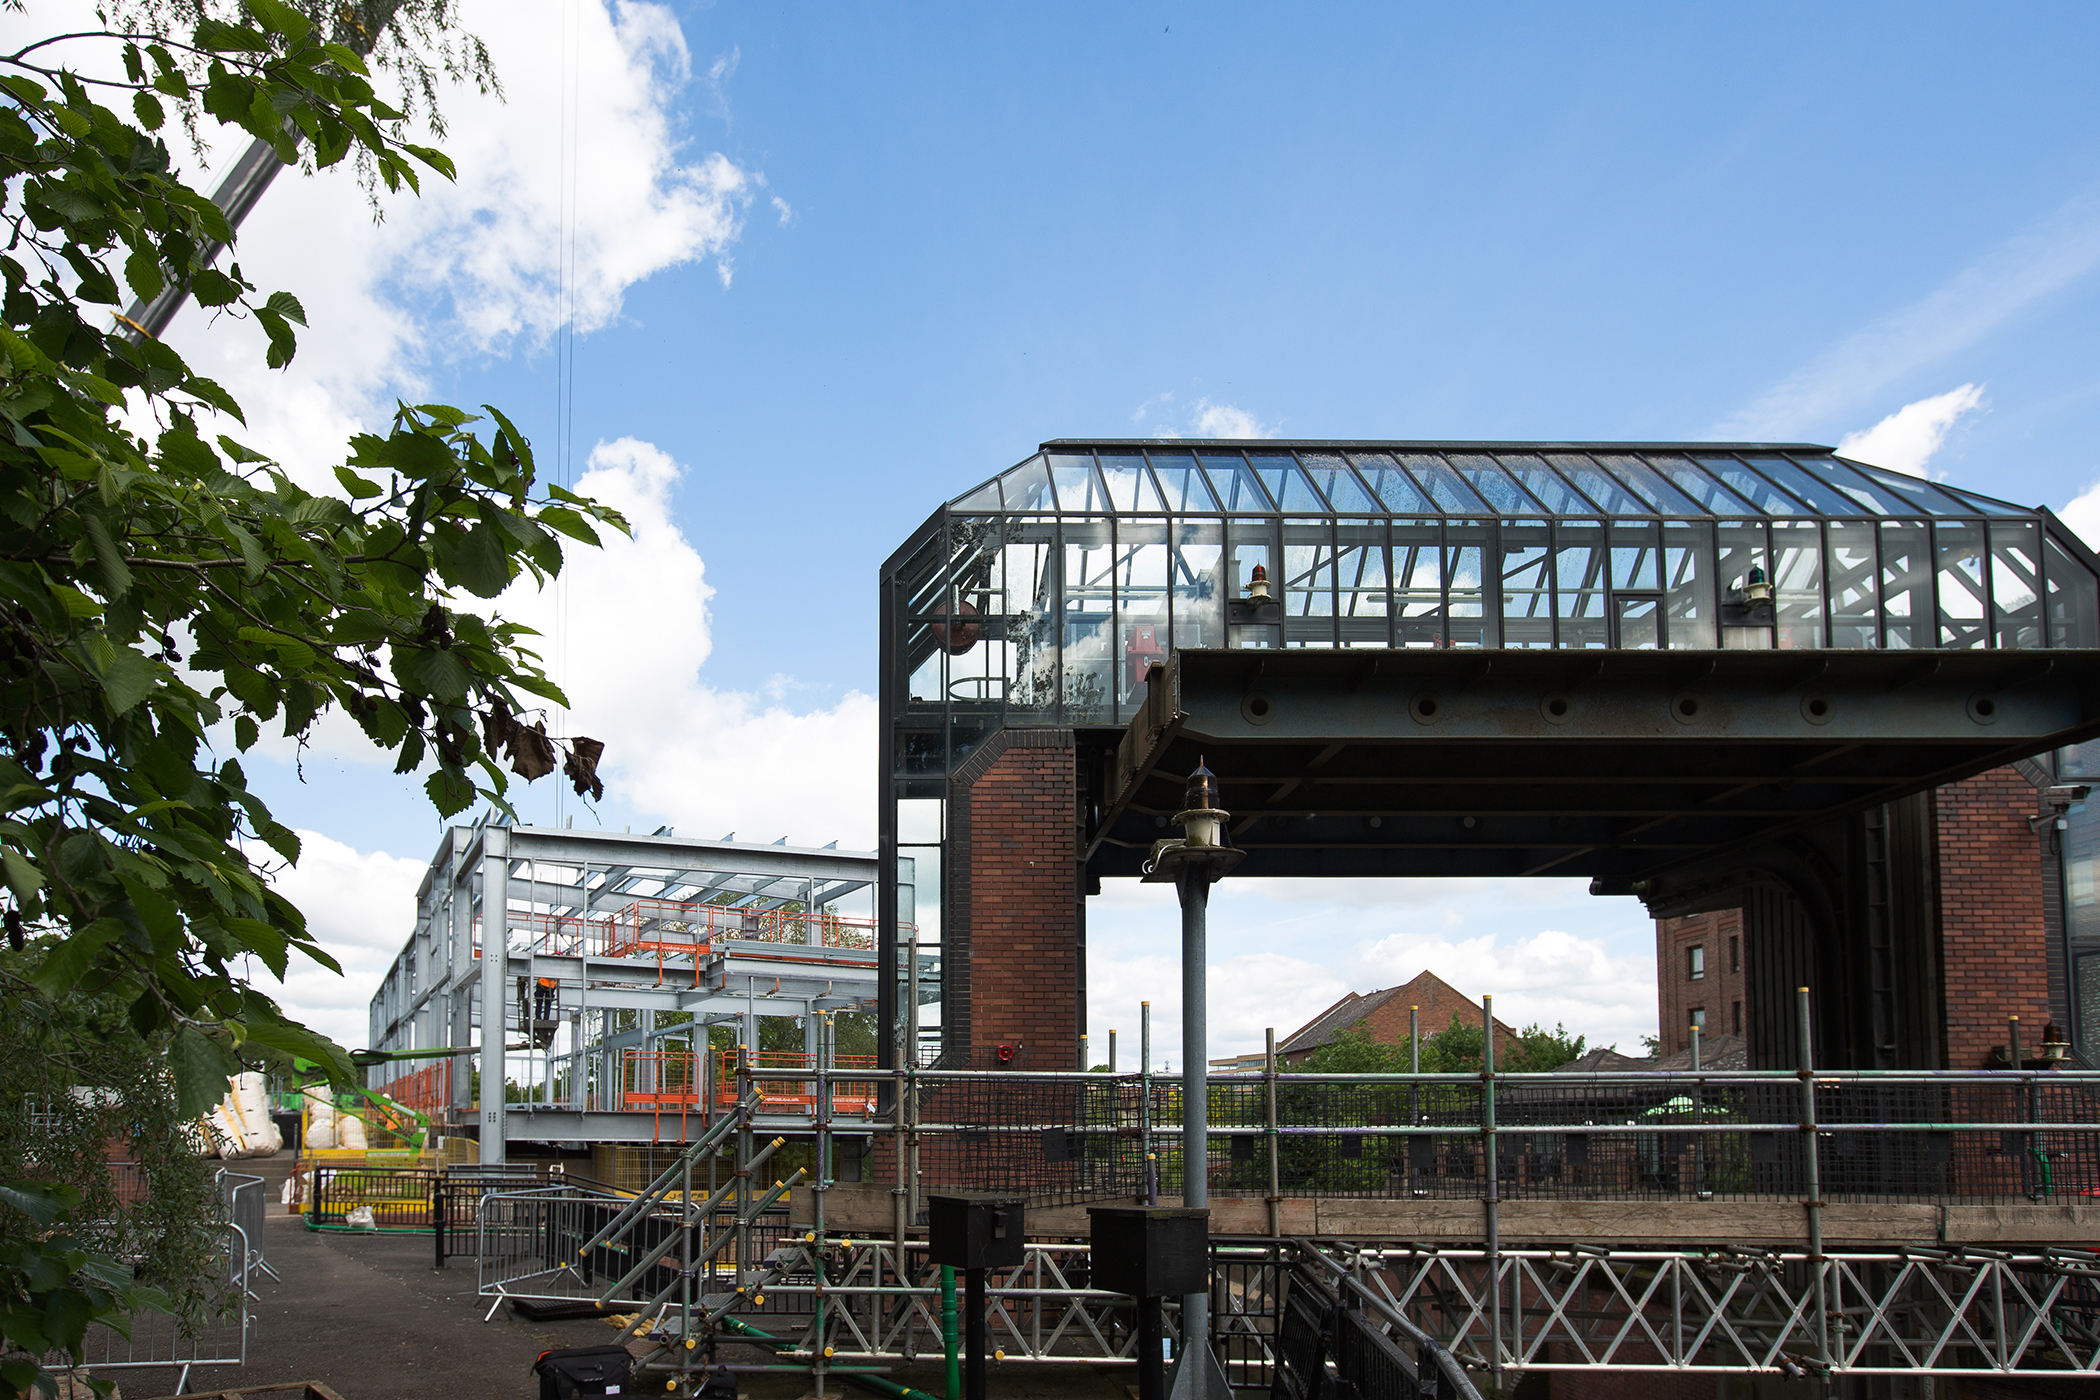 ECS fabricated steel in place to protect York city centre from flooding